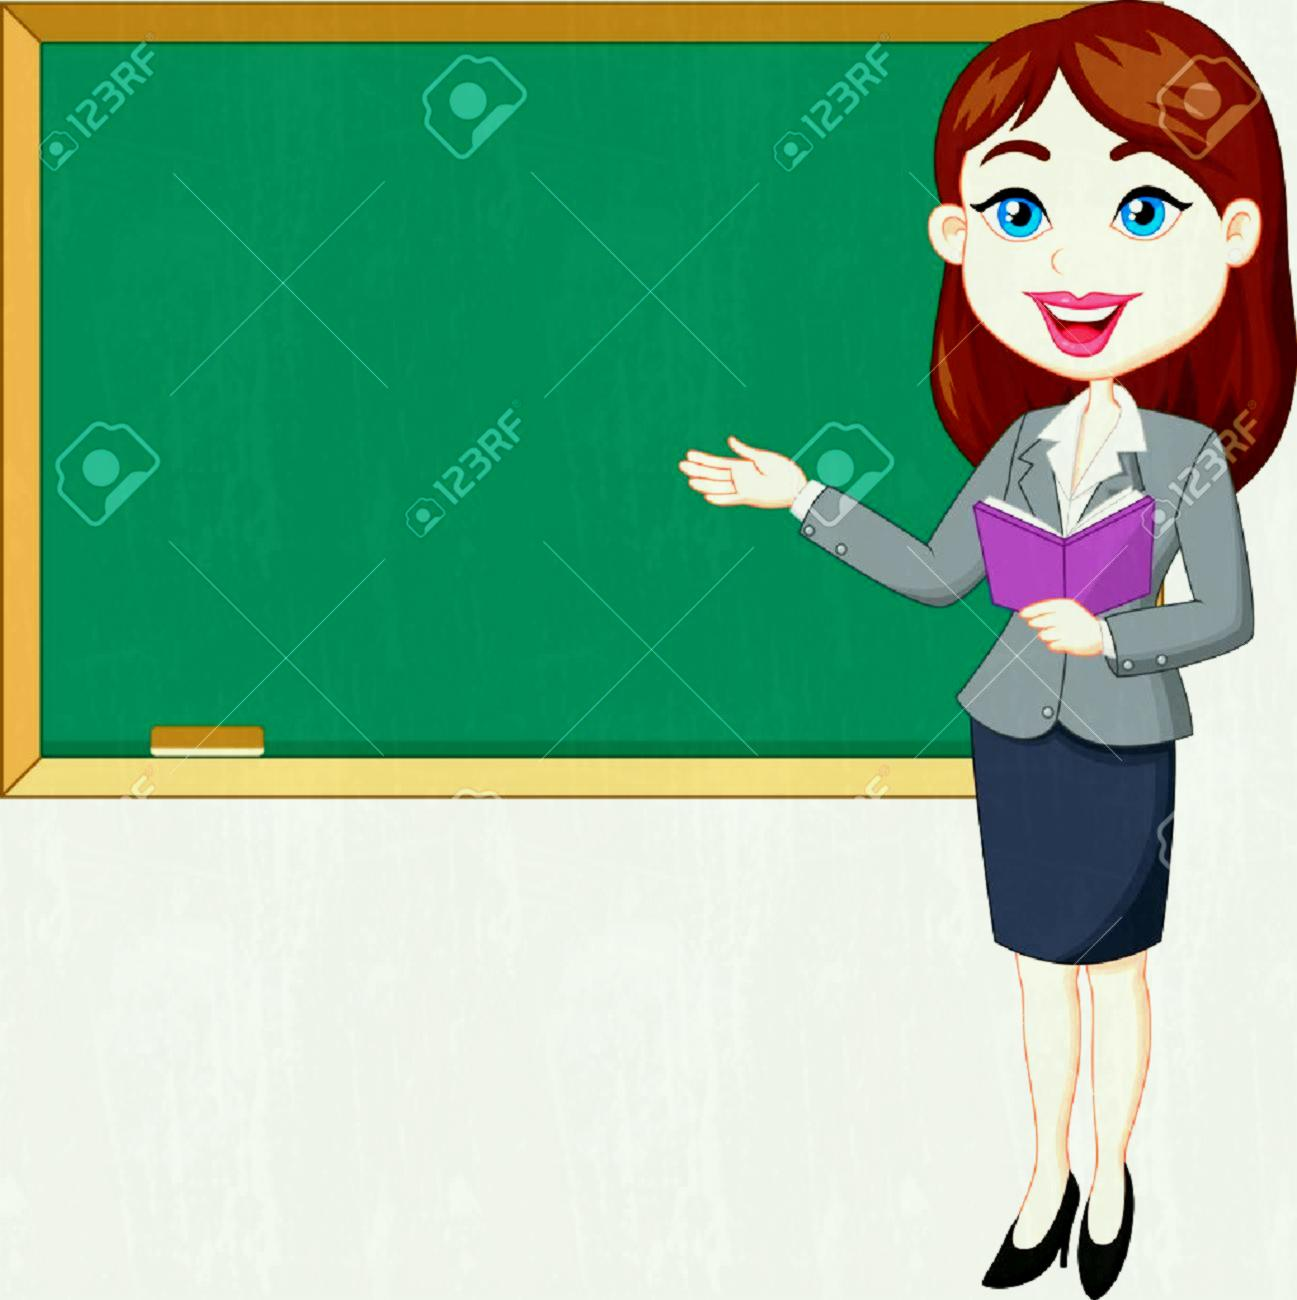 Blackboard with teacher clipart 8 » Clipart Station.